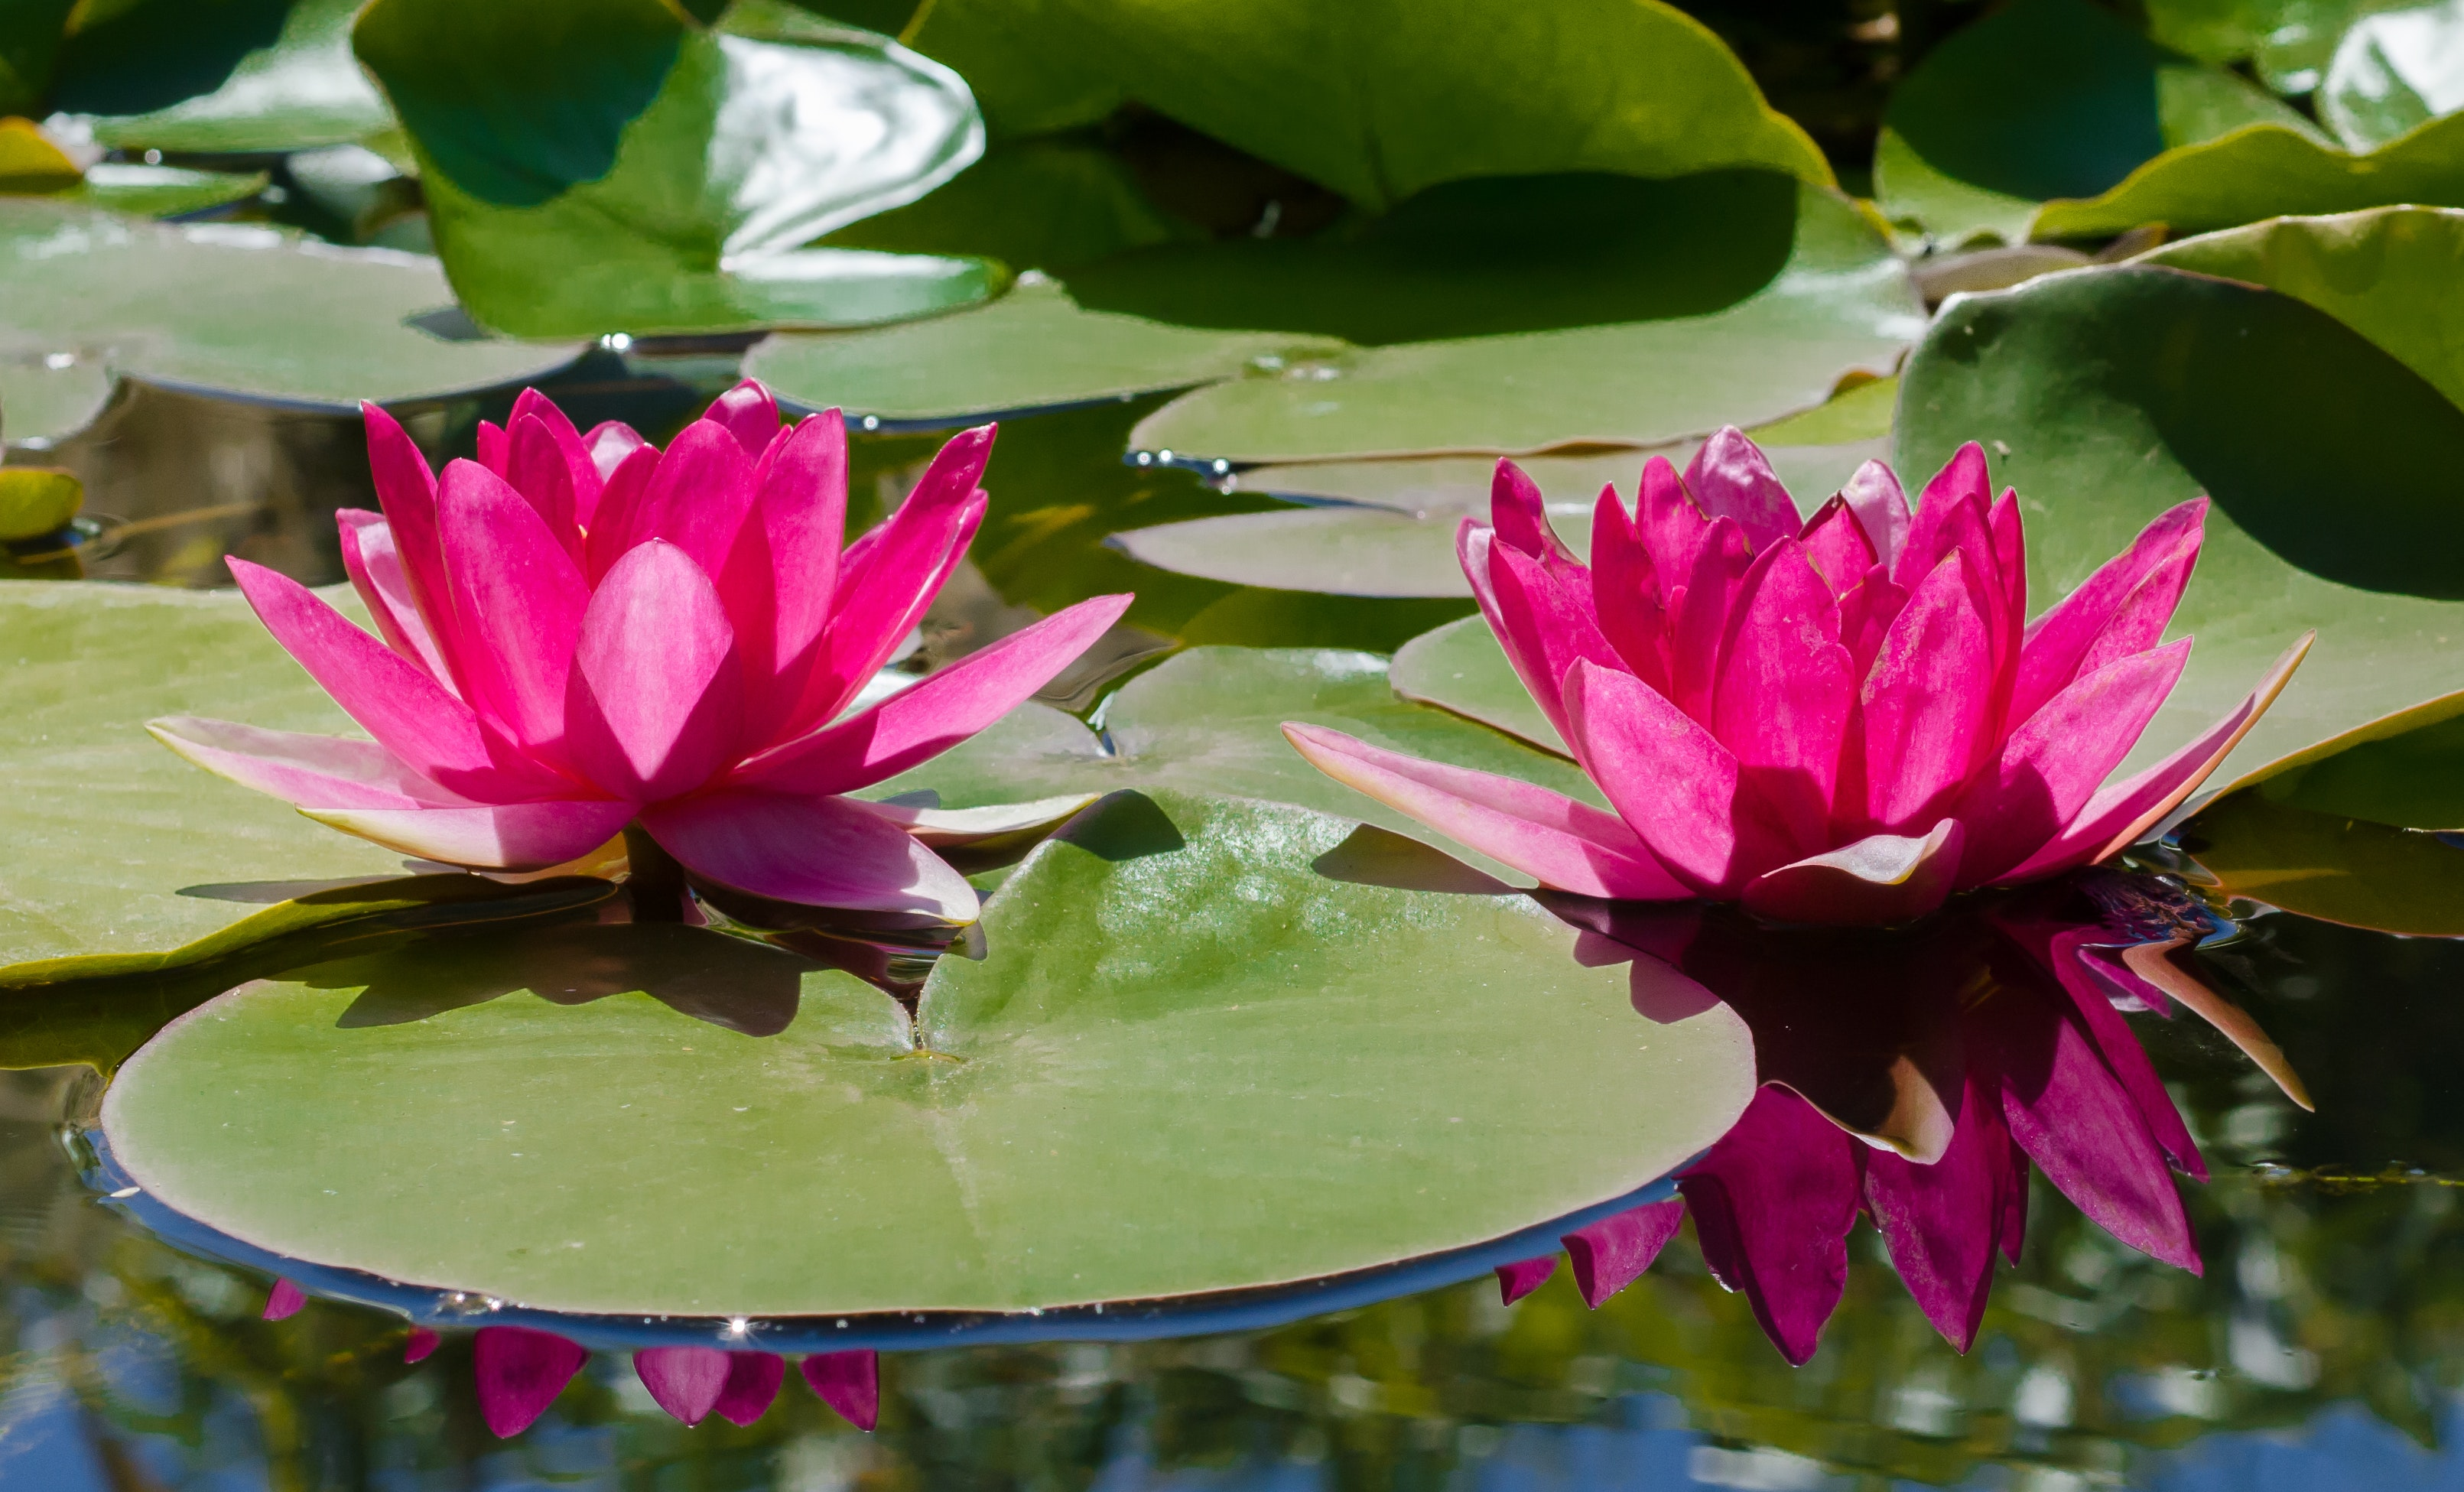 Pink Water Lily Flowers In Bloom Free Stock Photo